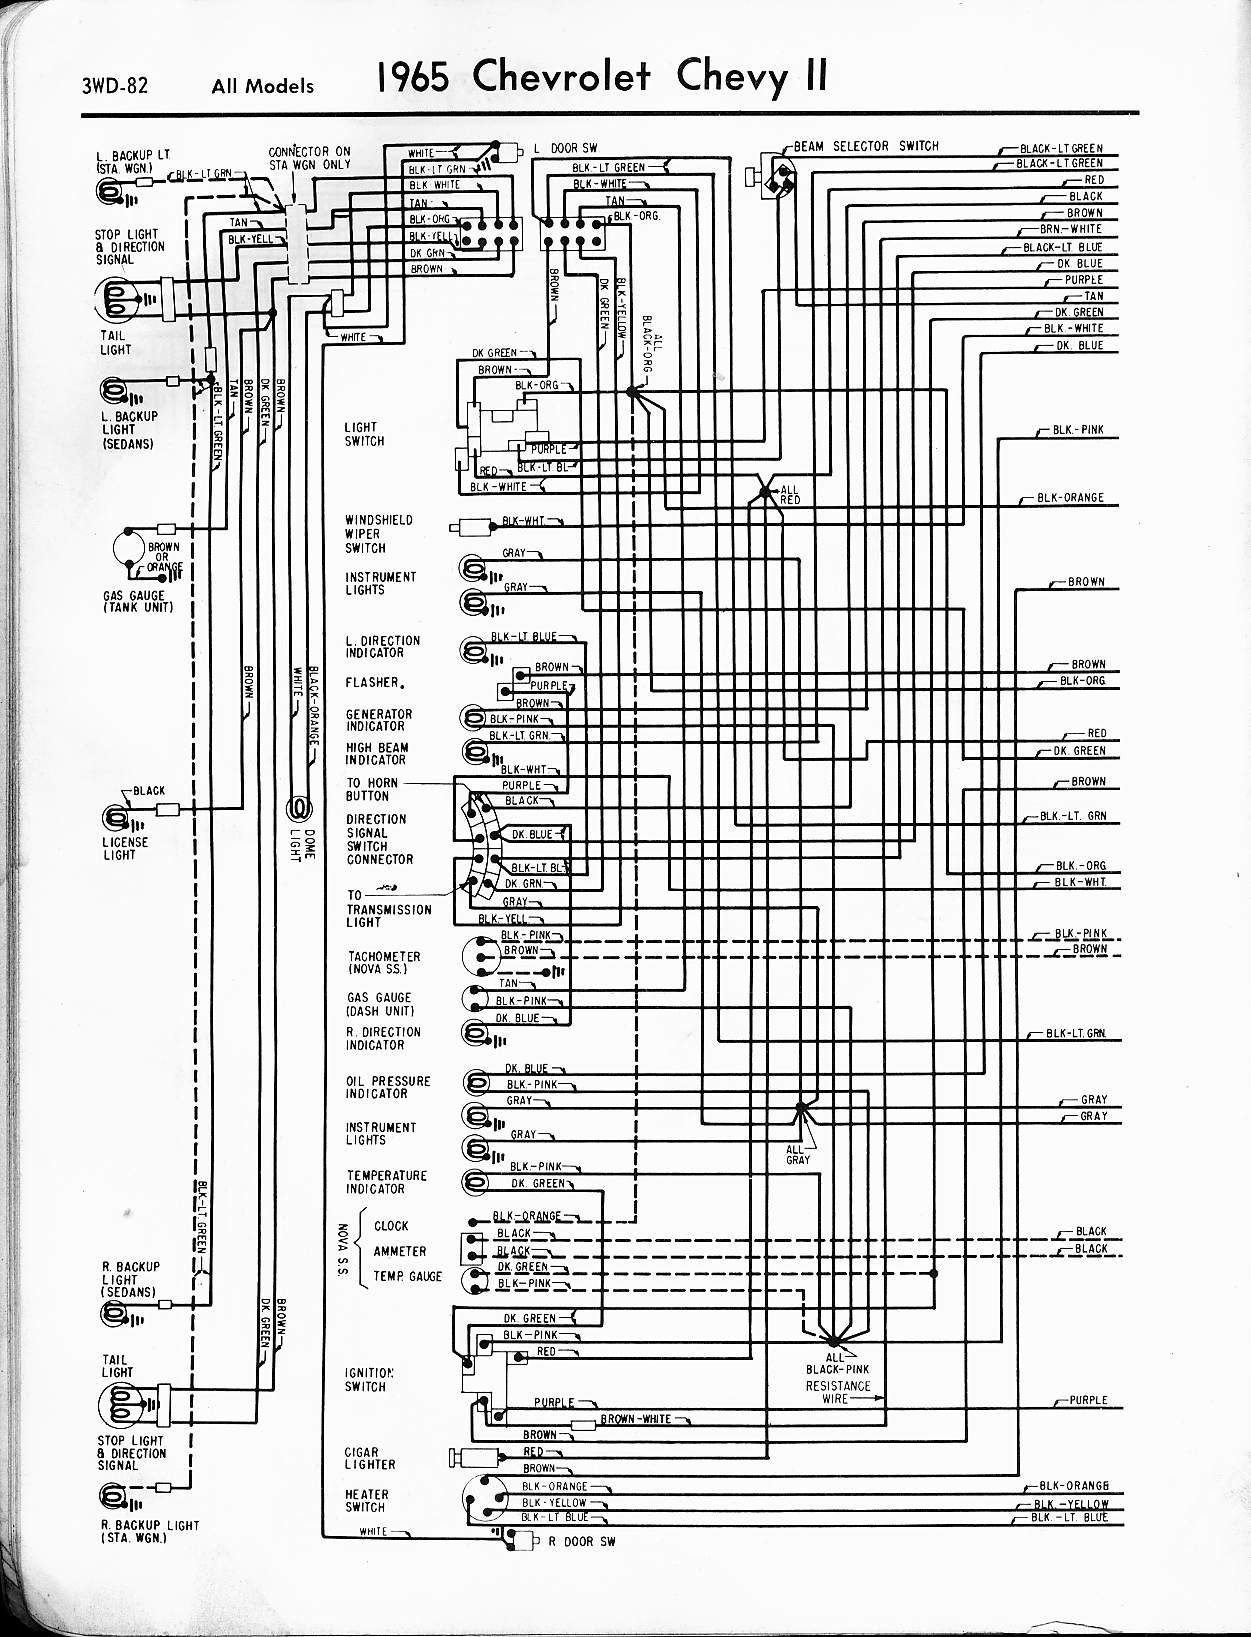 1964 chevy nova wiring diagram hyperstart dual battery kit 57 65 diagrams